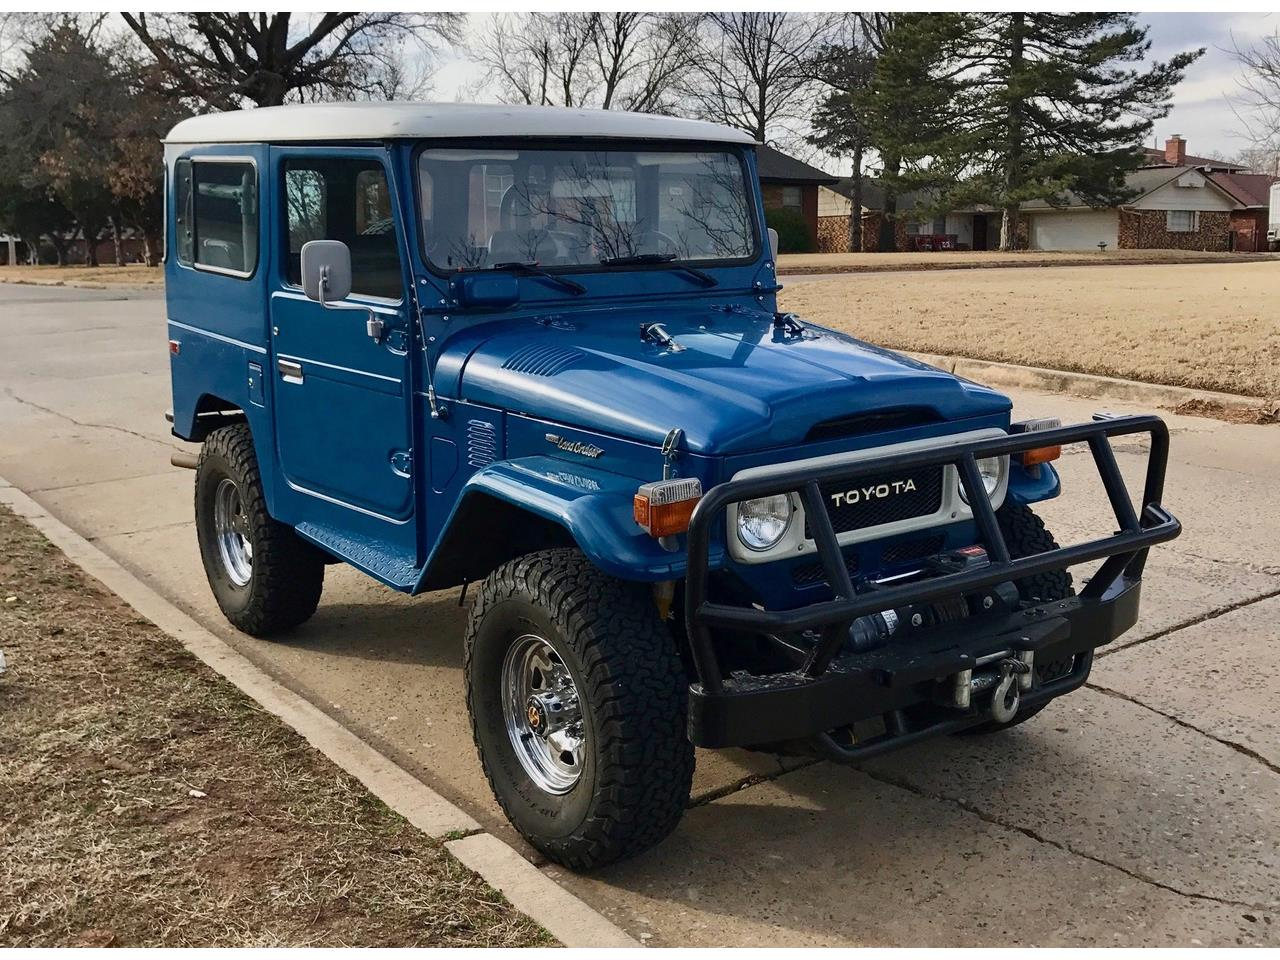 For Sale: 1983 Toyota Land Cruiser FJ40 in Southlake, Texas